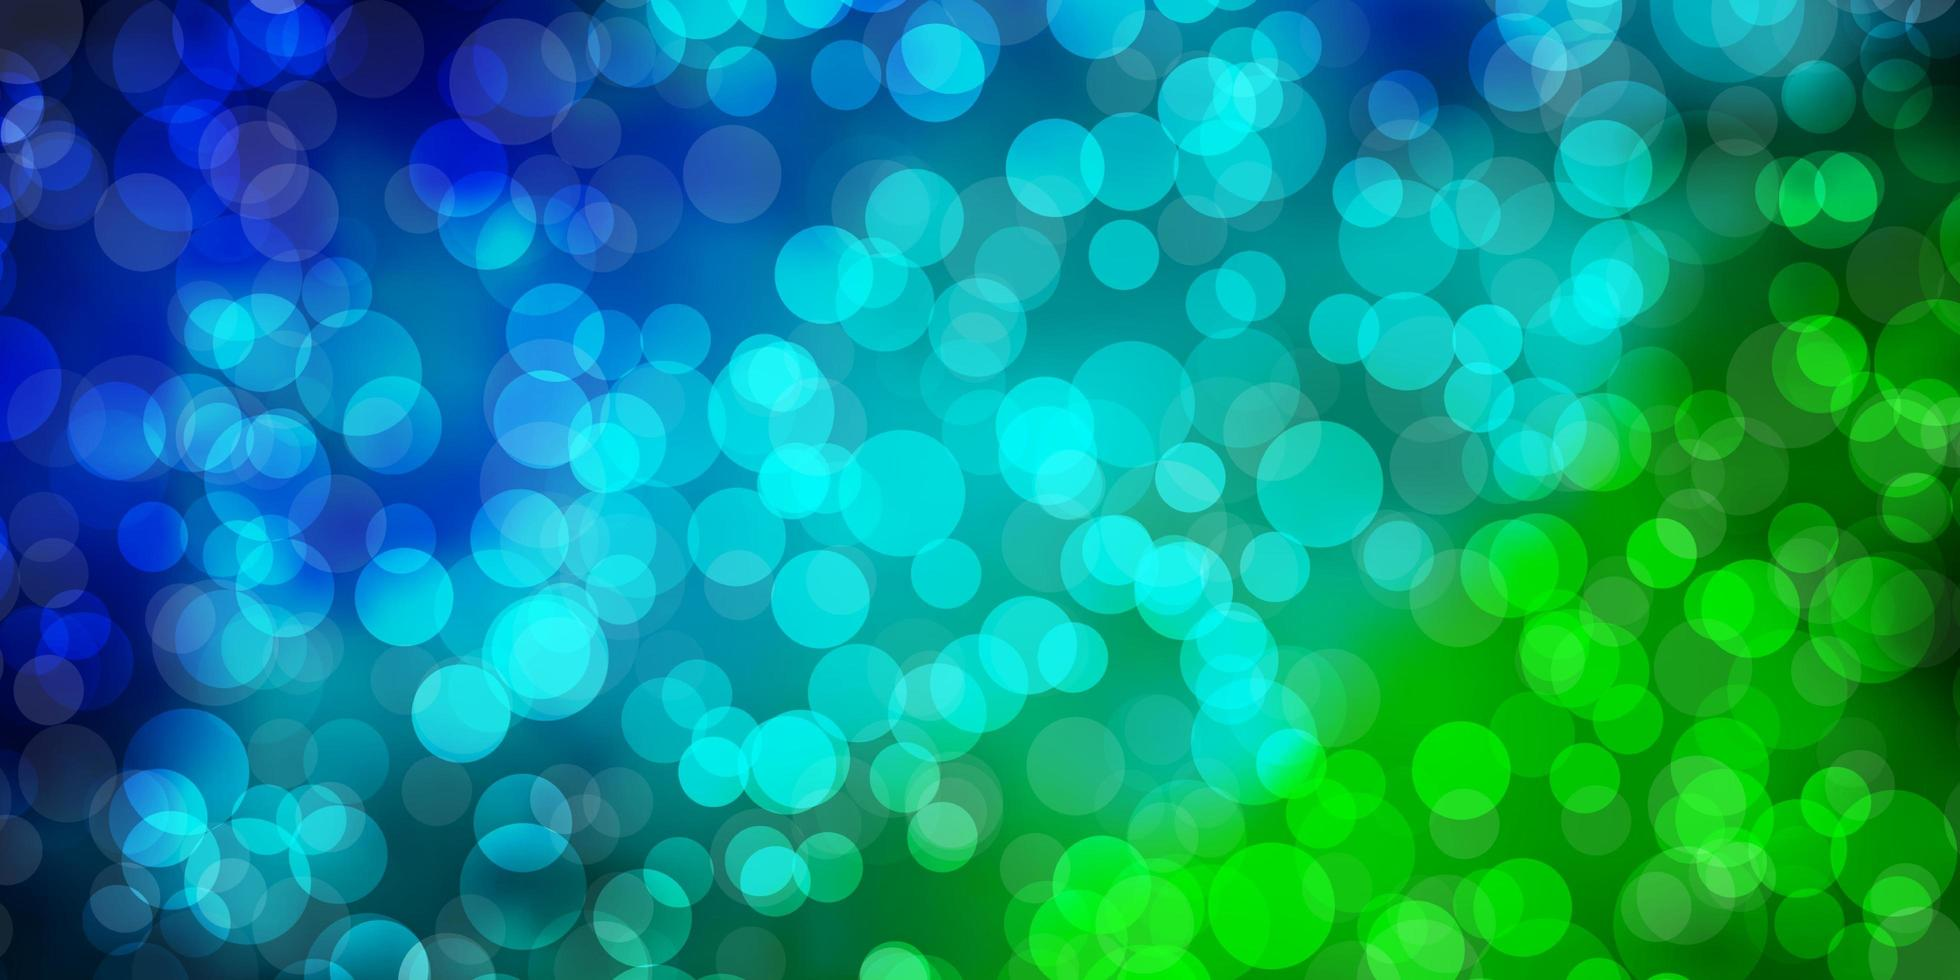 Light blue and green texture with circles. vector